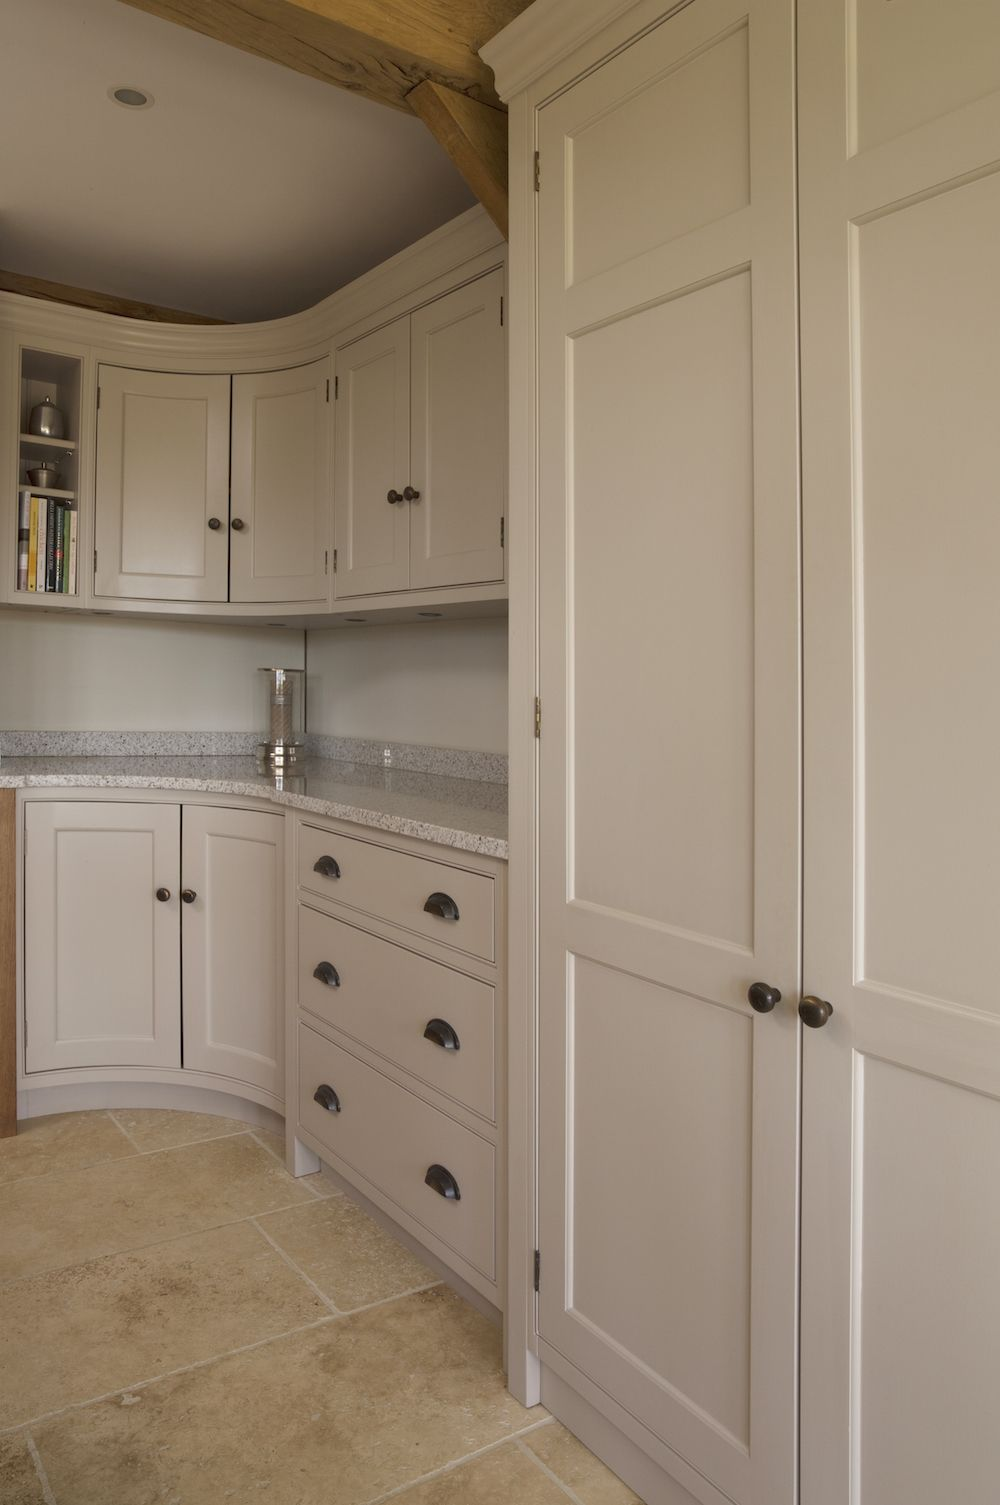 Hand Painted Kitchen Cabinetry In Farrow Ball Elephant S Breath